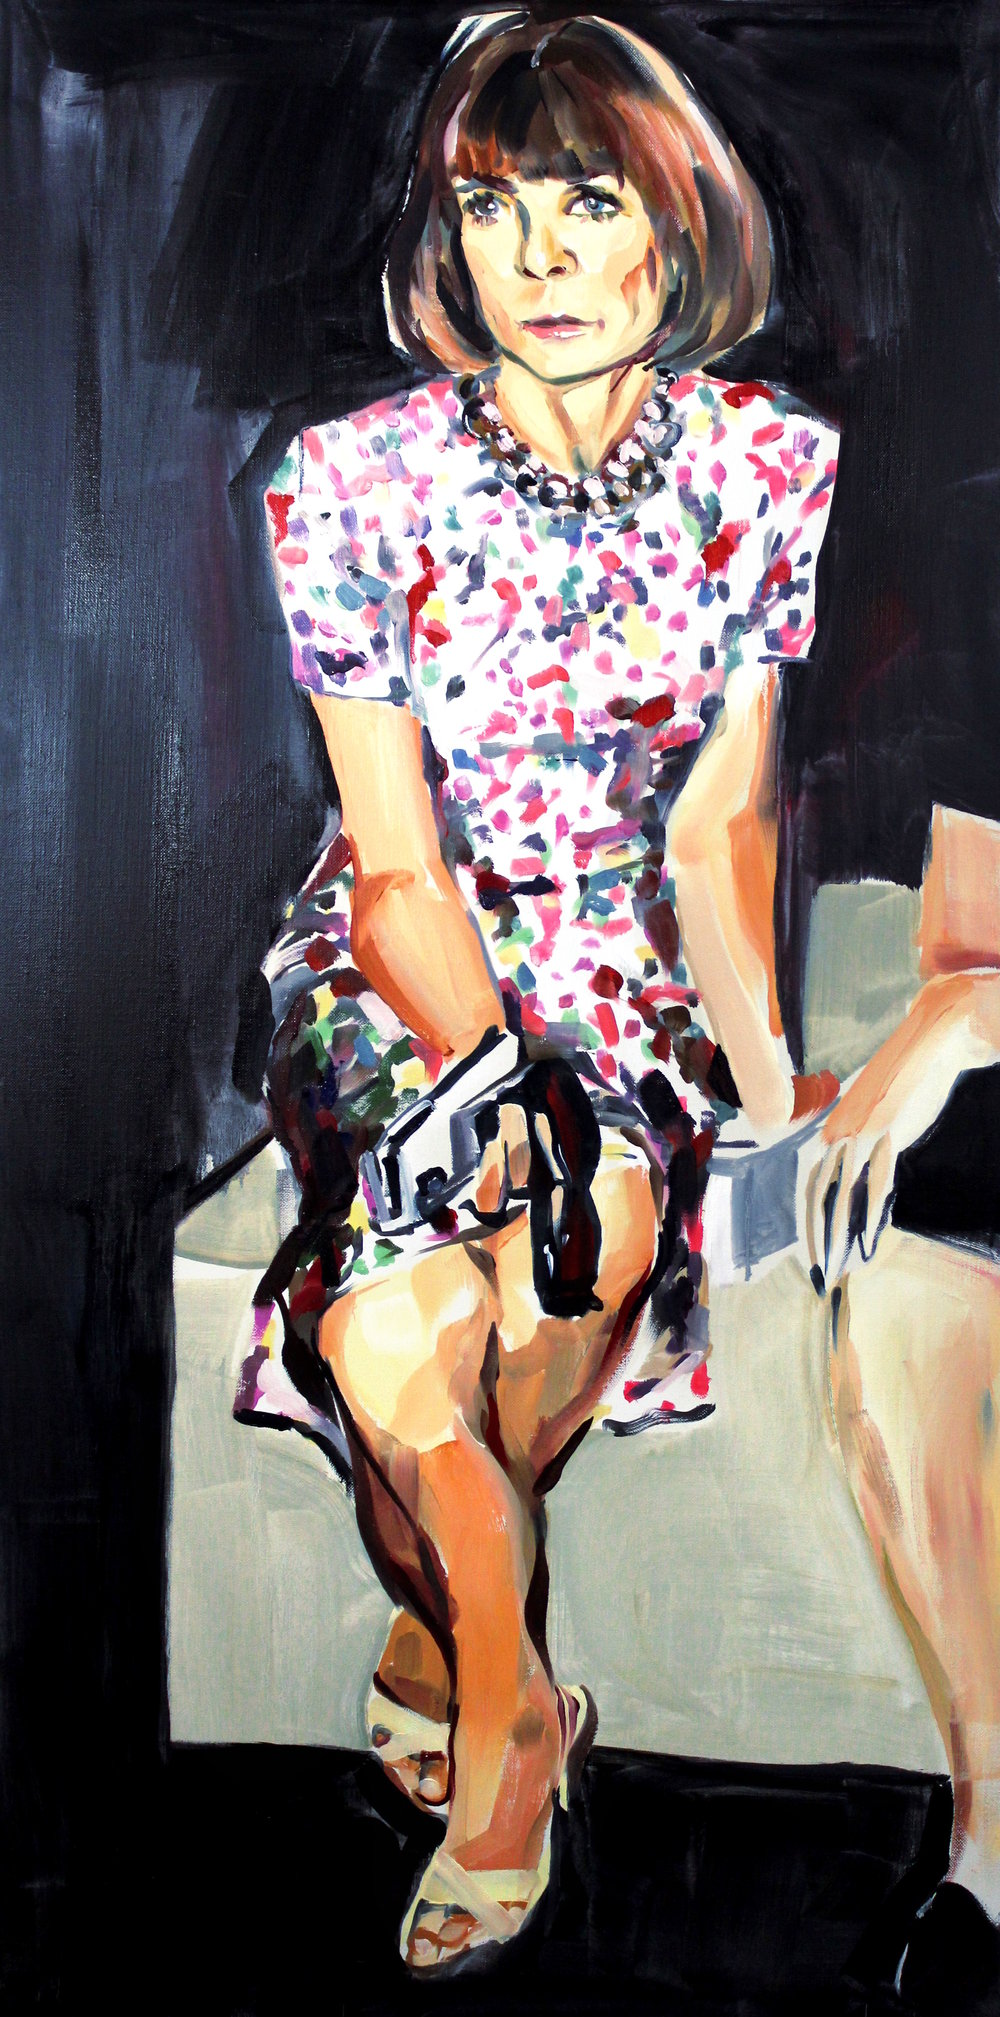 Laura Collins Anna Wintour Double Crossing Her Legs no. 1 oil on linen 24x48 2018.JPG